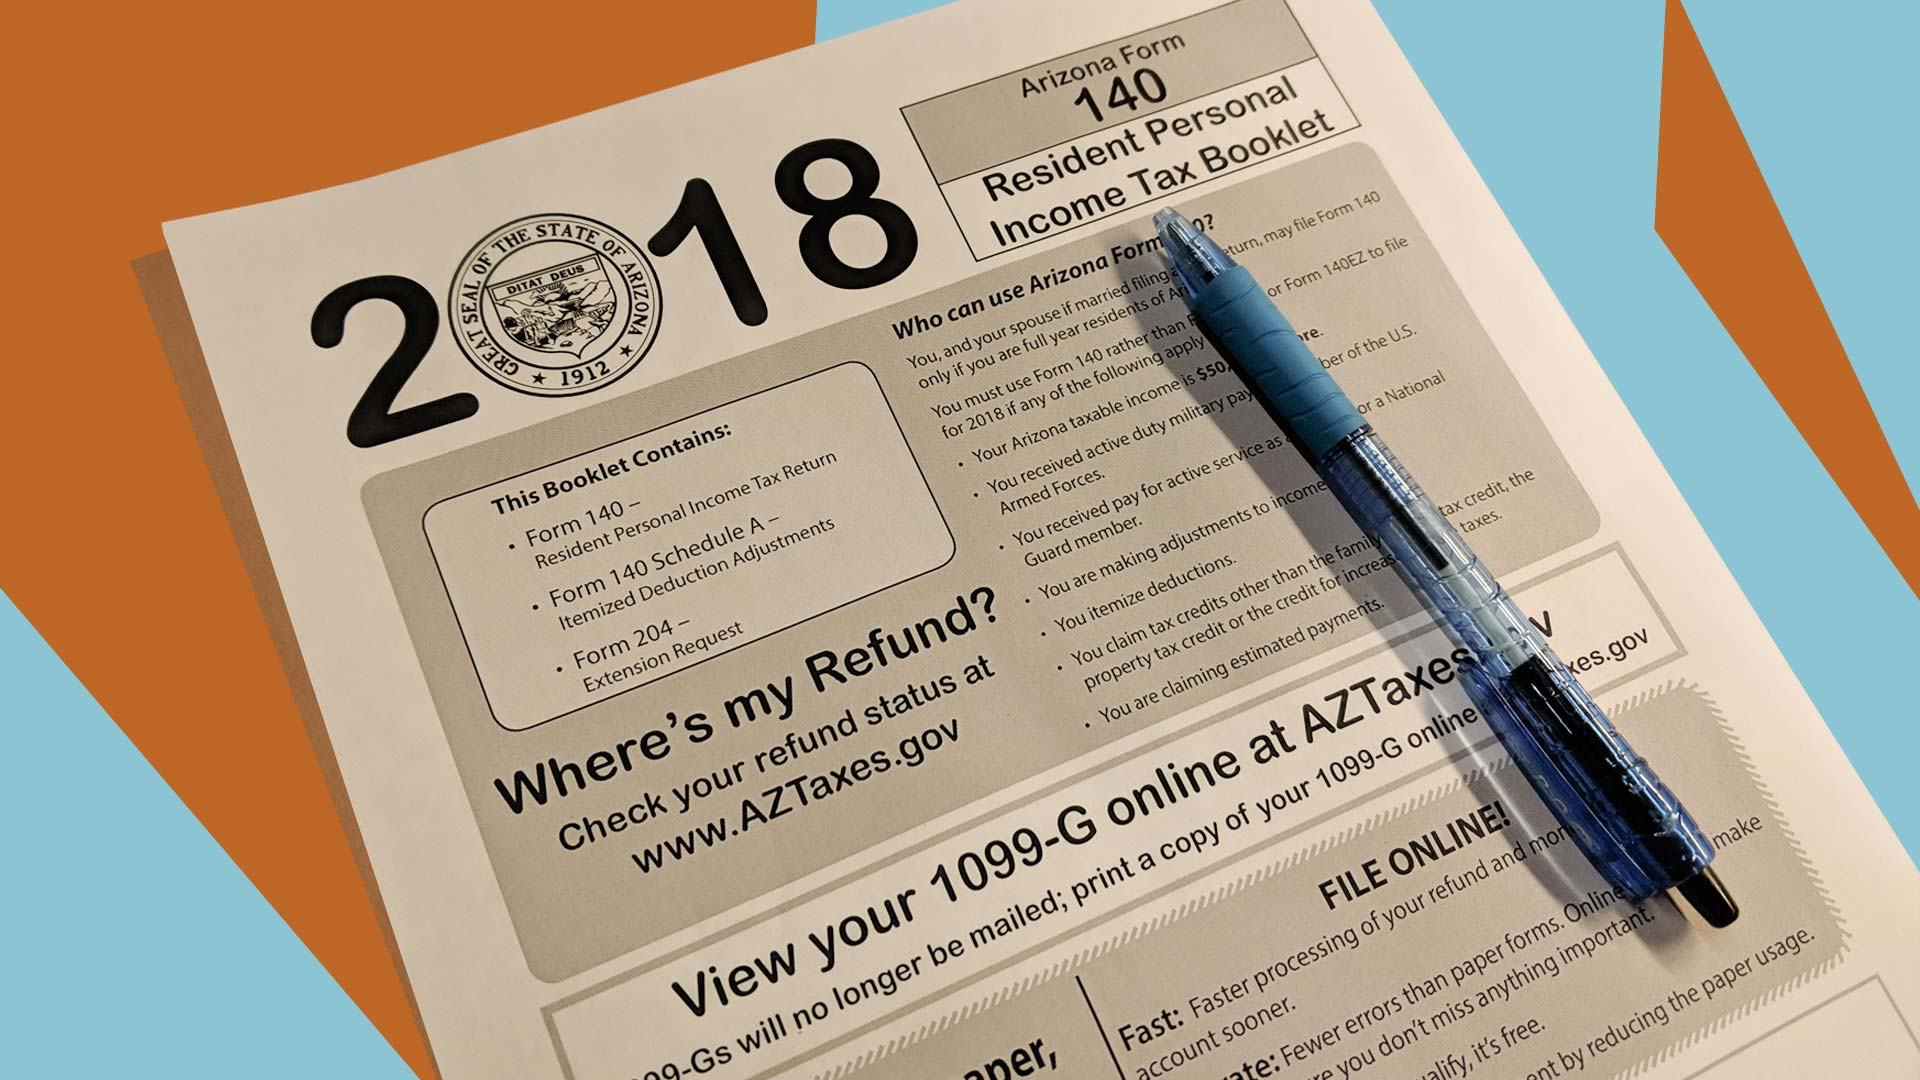 The 2018 Arizona tax booklet.